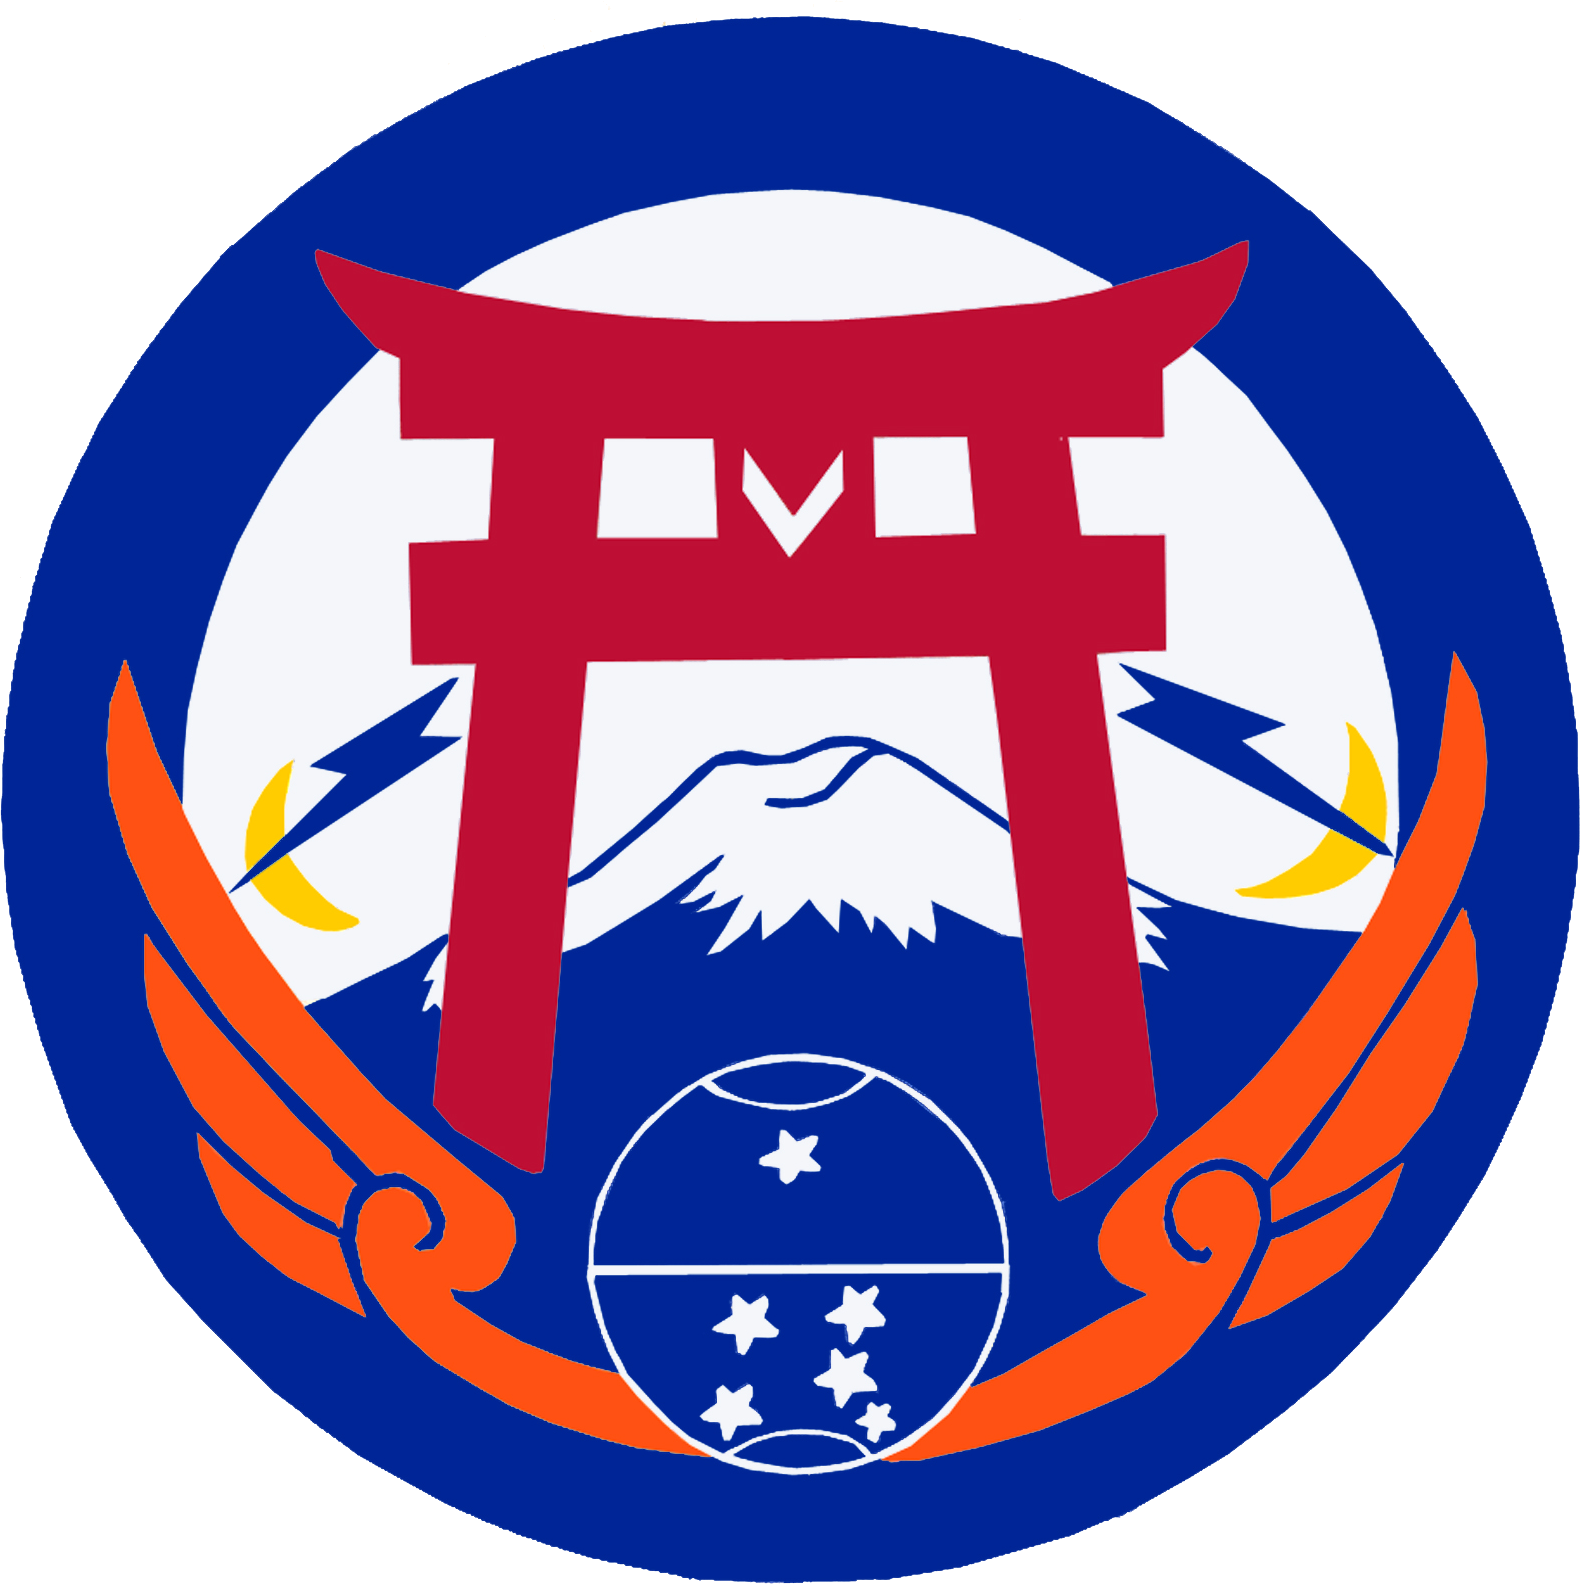 File:315th Bombardment Wing.